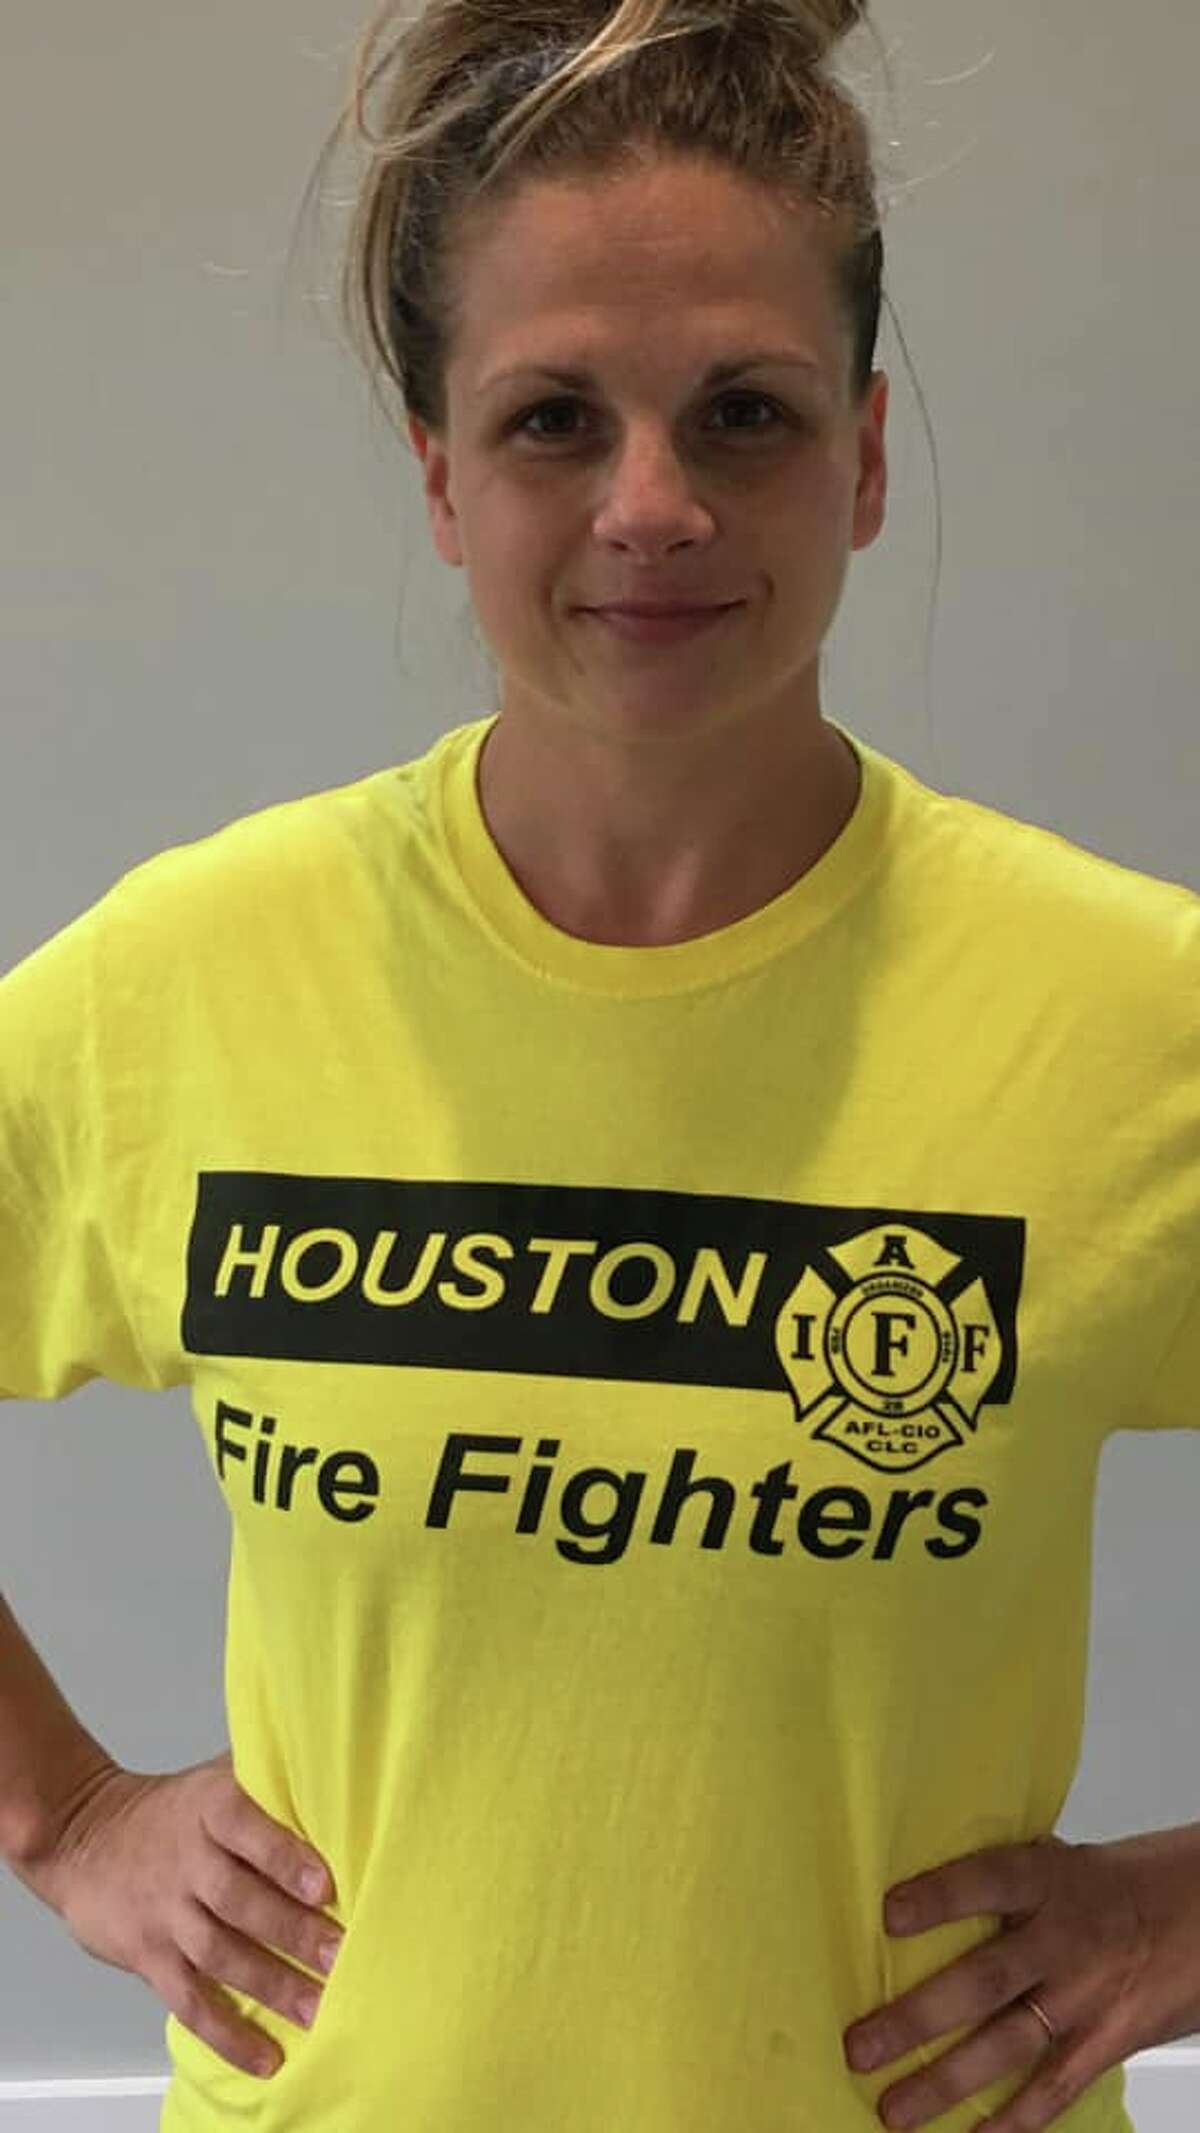 Jillian Ostrewich, the wife of a Houston firefighter, said she was asked to turn her Houston Fire Fighters shirt inside out at a polling station earlier this week, even thought the shirt didn't appear to break state election law. The fire union said around 25 other firefighters had been asked to cover their generic fire department shirts. >>>